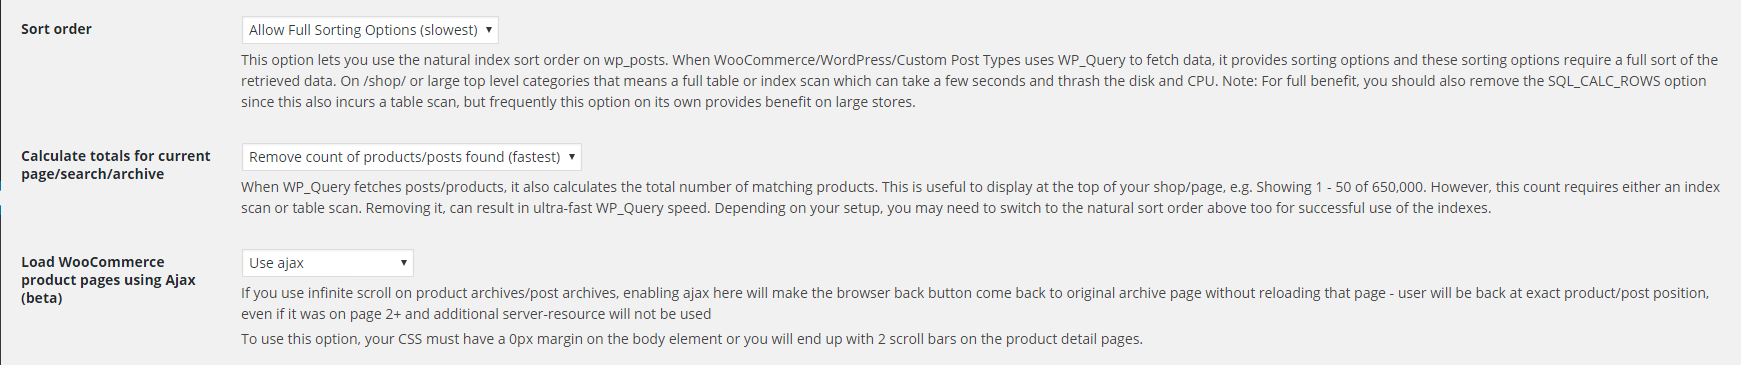 sort-order-options-for-max-wpi-wordpress-speed